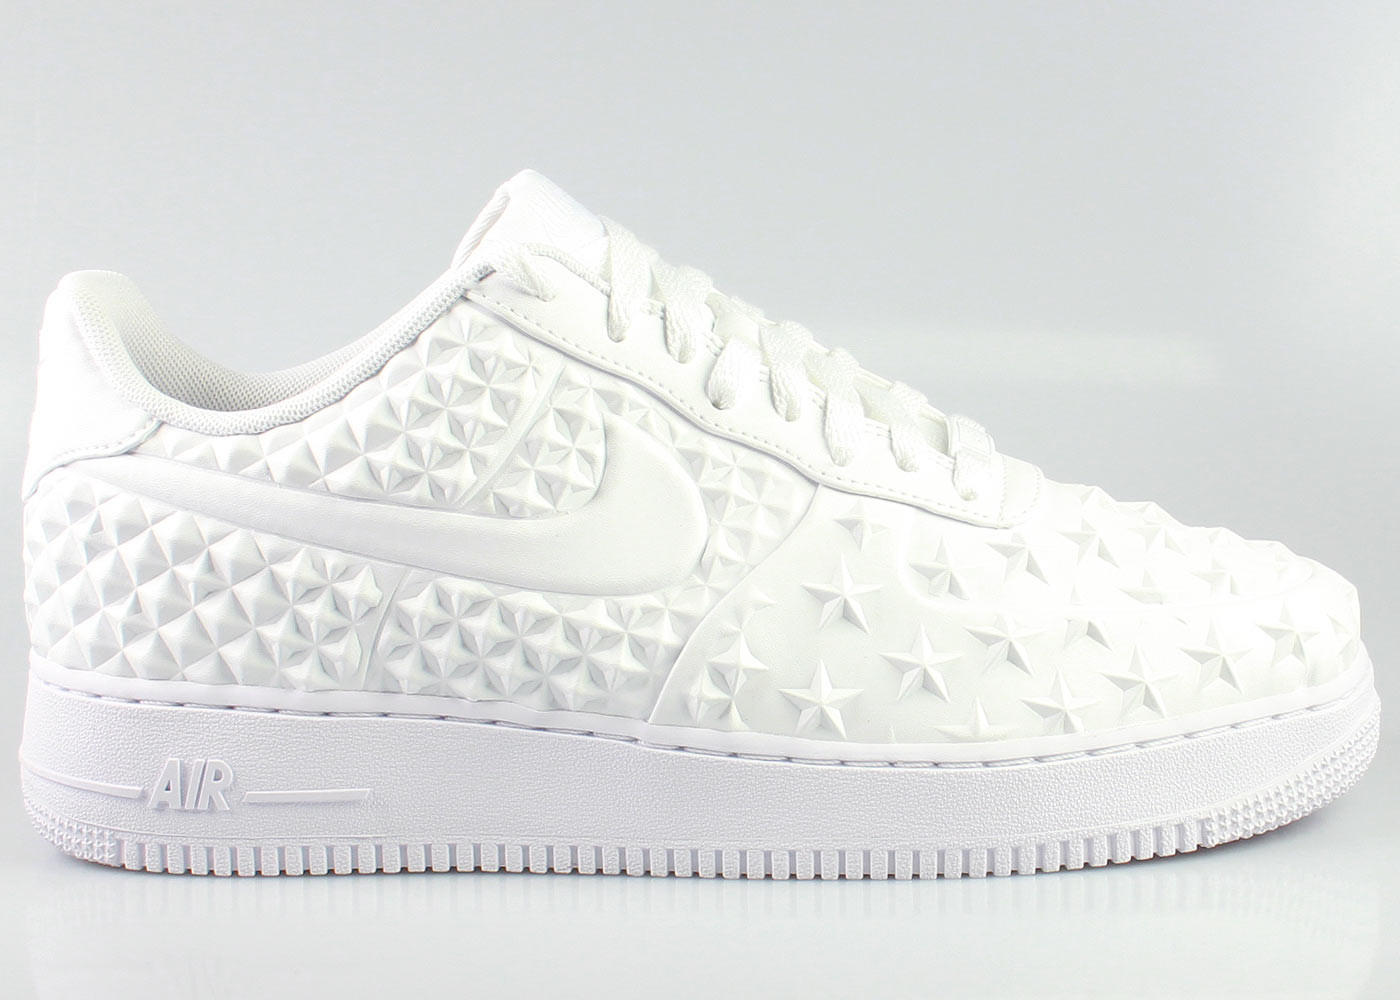 Nike Men s Air Force 1 Low LV8 VT Independence Day Pack - White 7bcc5a9ed